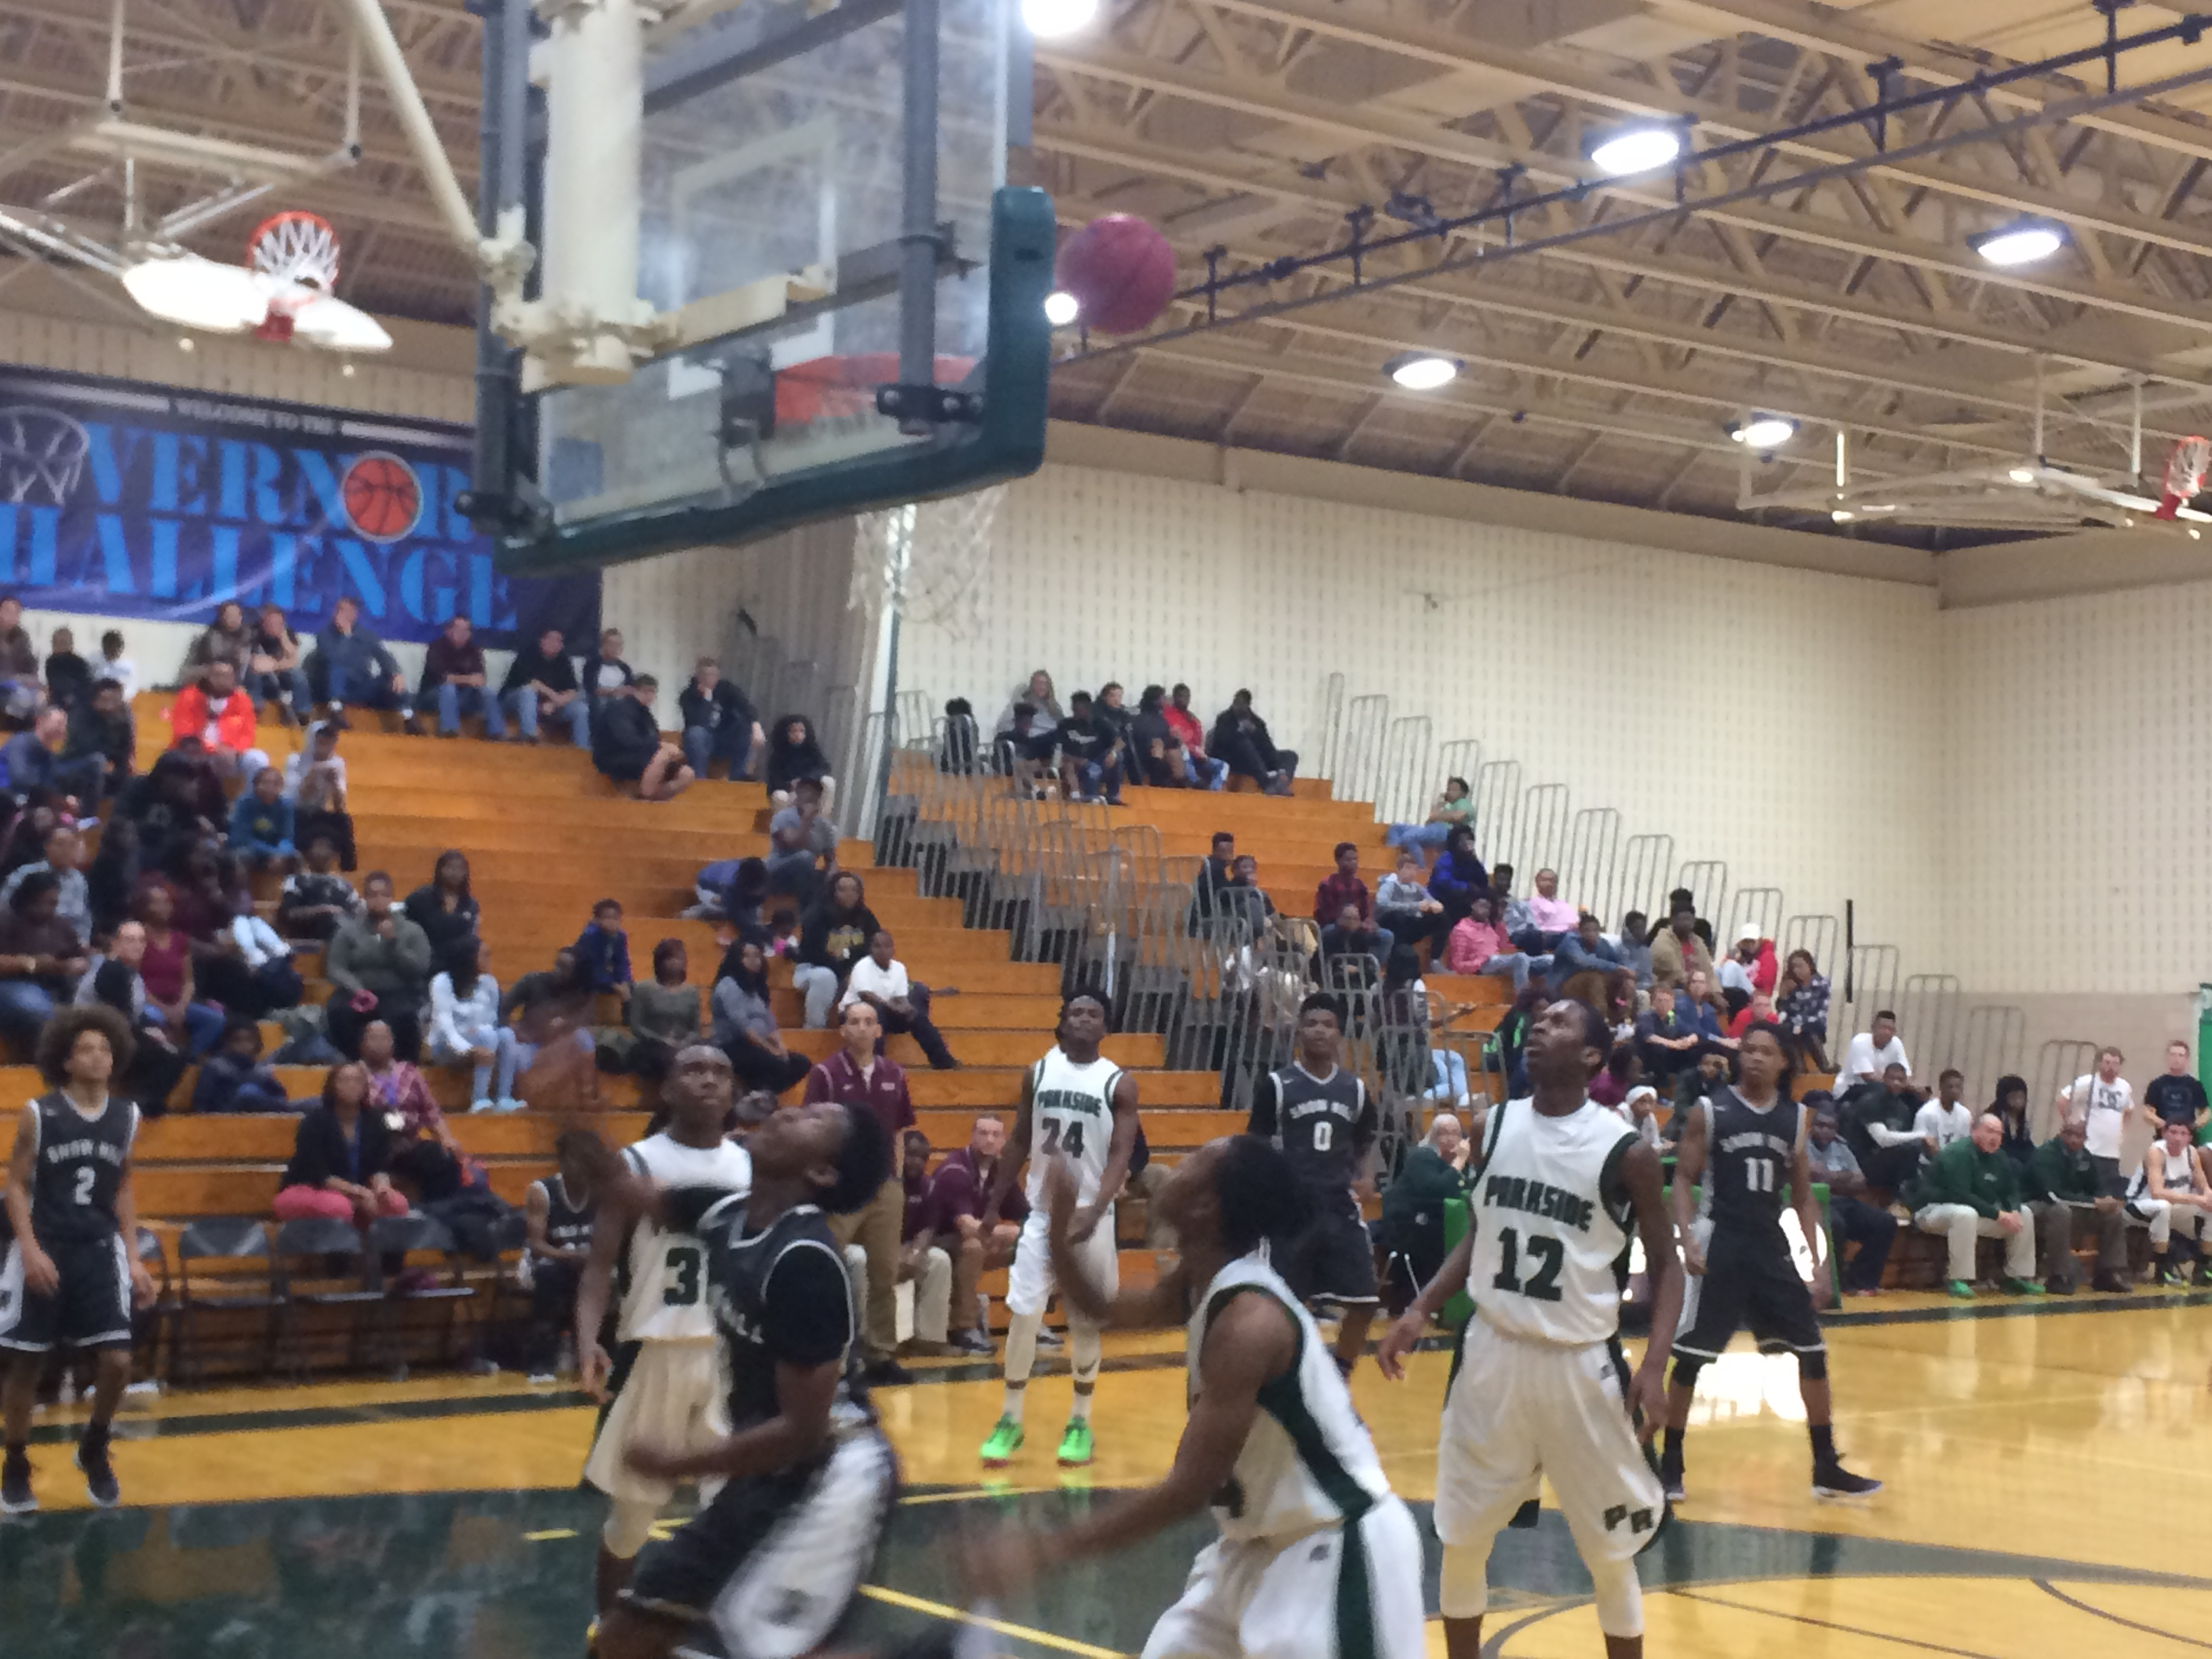 Feb. 11 Will be Full Day of Bayside Basketball